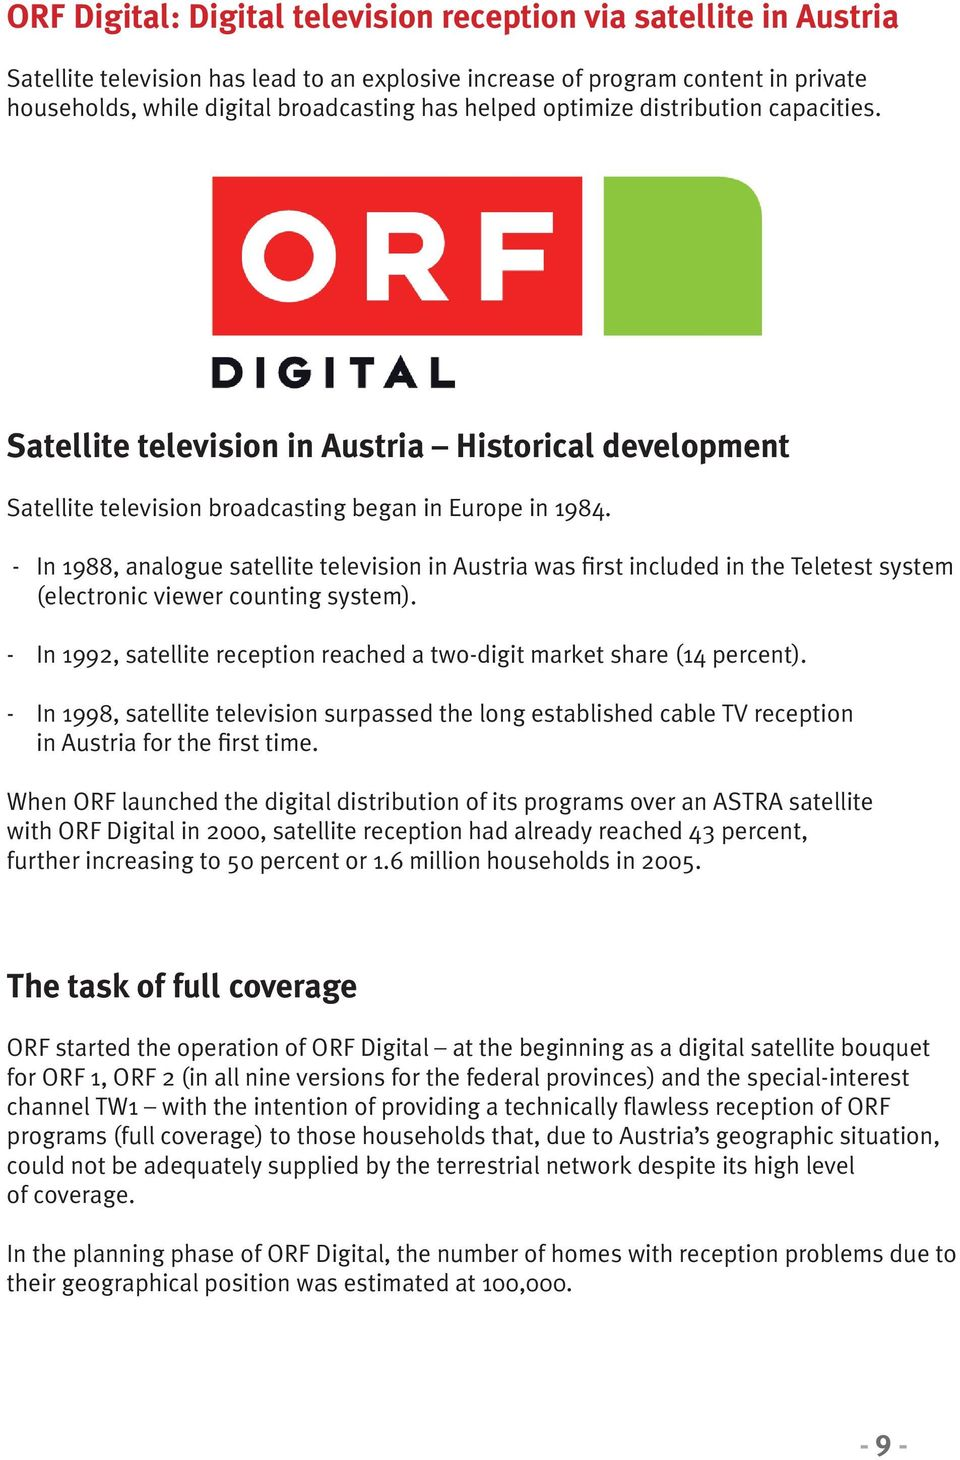 - In 1988, analogue satellite television in Austria was first included in the Teletest system (electronic viewer counting system).